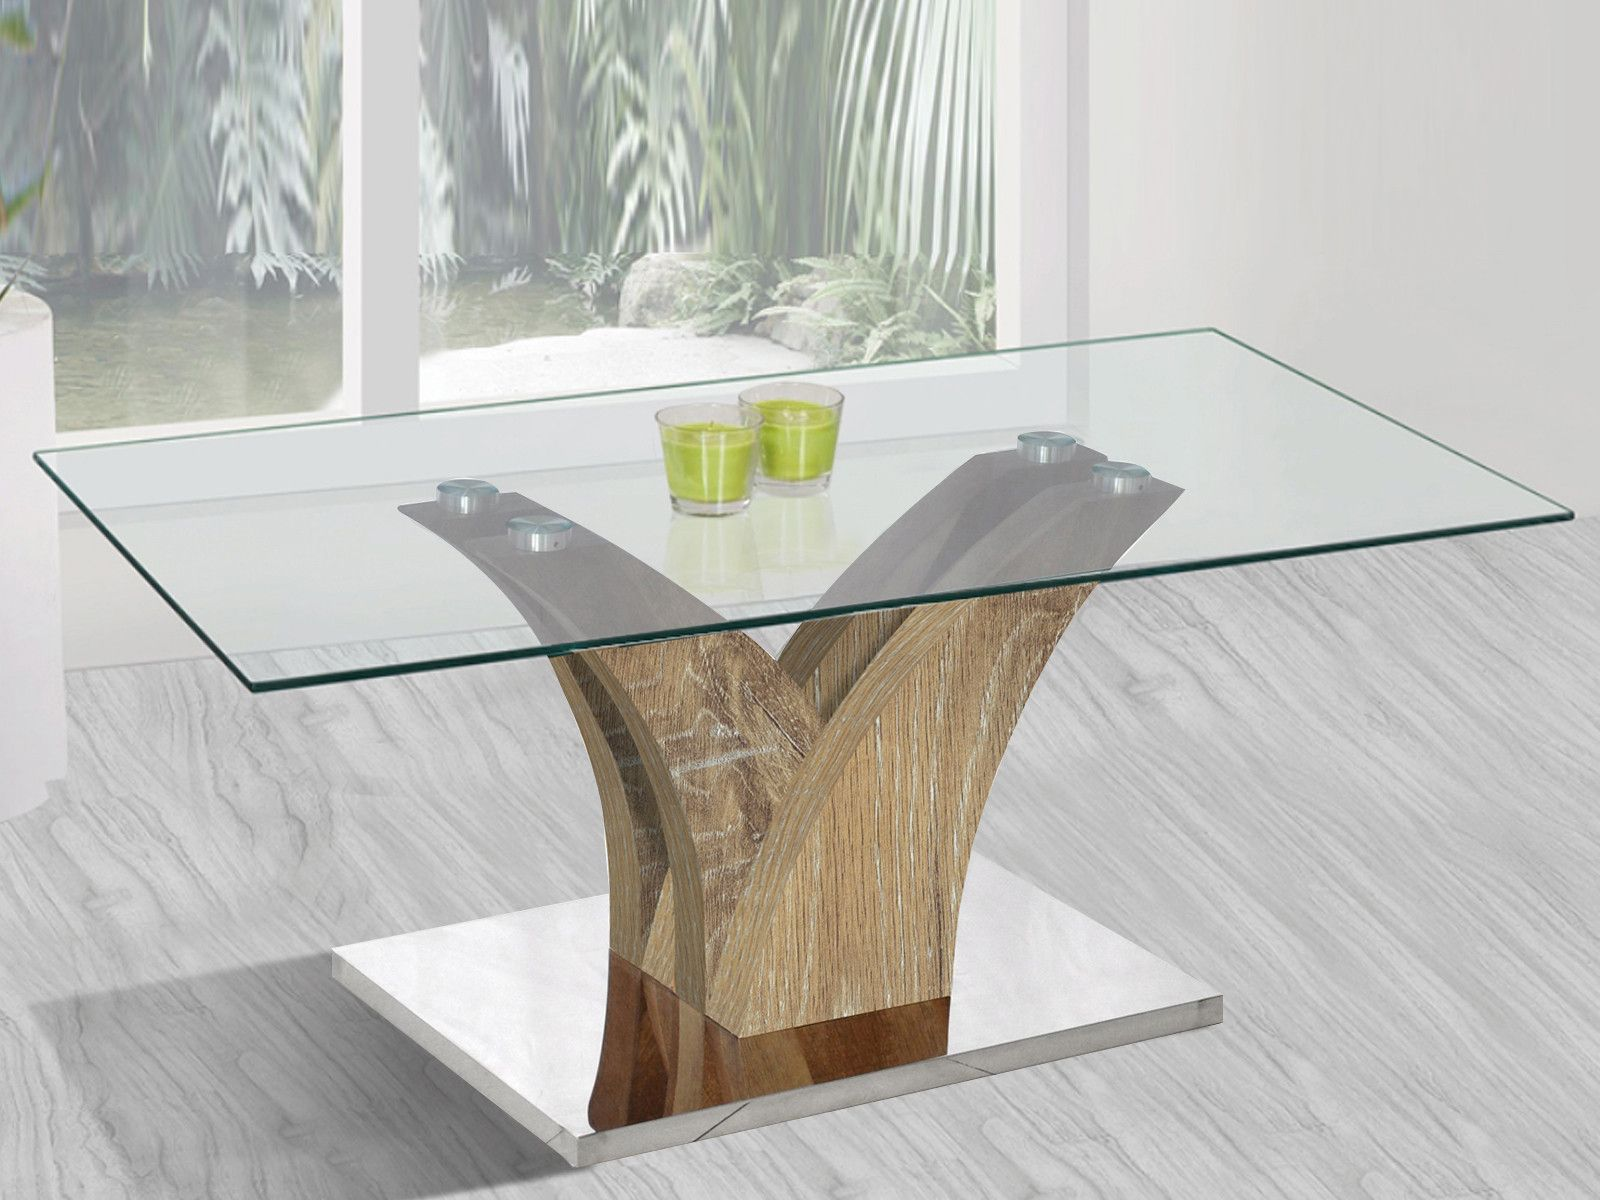 La Table Basse Verre Et Chene Vieilli Moderne Celia Represente La Delicatesse Le Raffinement Mr Mr Table Basse Rectangulaire Table Basse Table Basse Verre